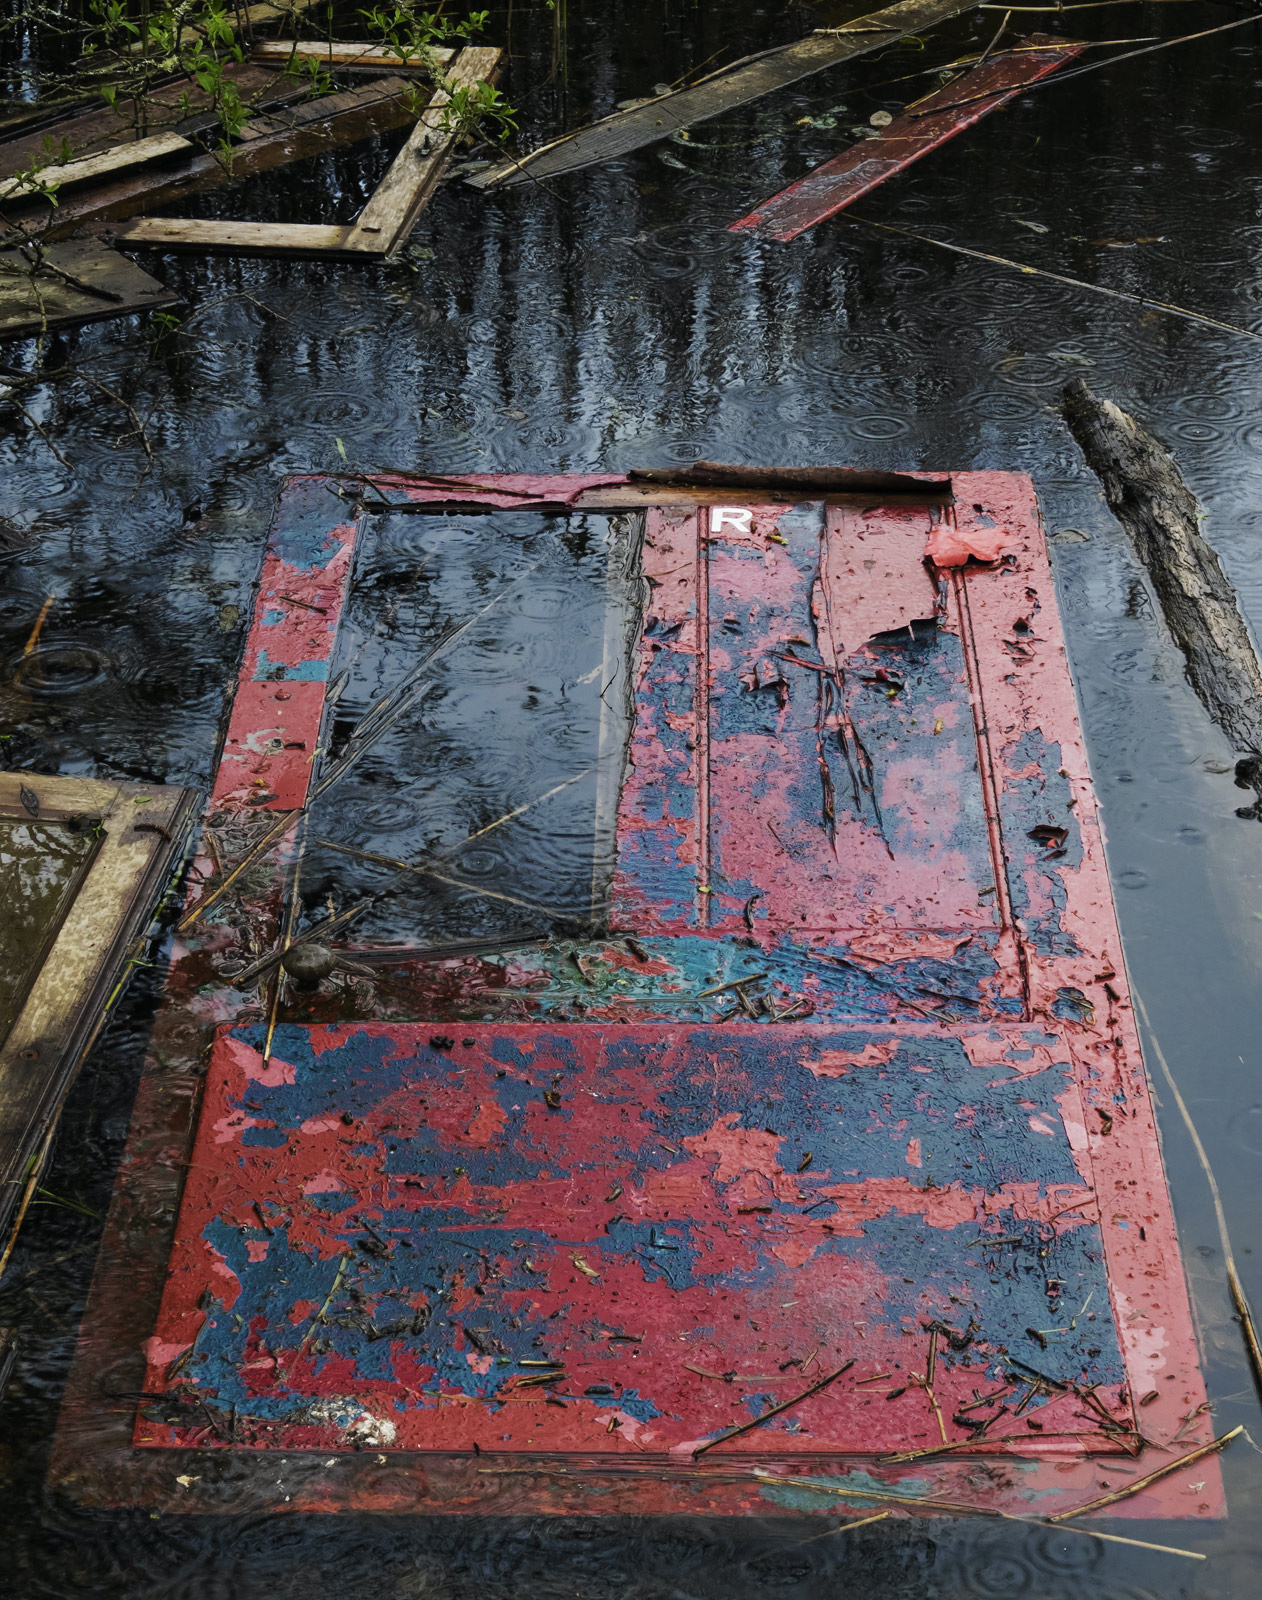 At the foot of Blairs Loch is an old boat shed which has been painted many times in alternating years in red followed by blue...